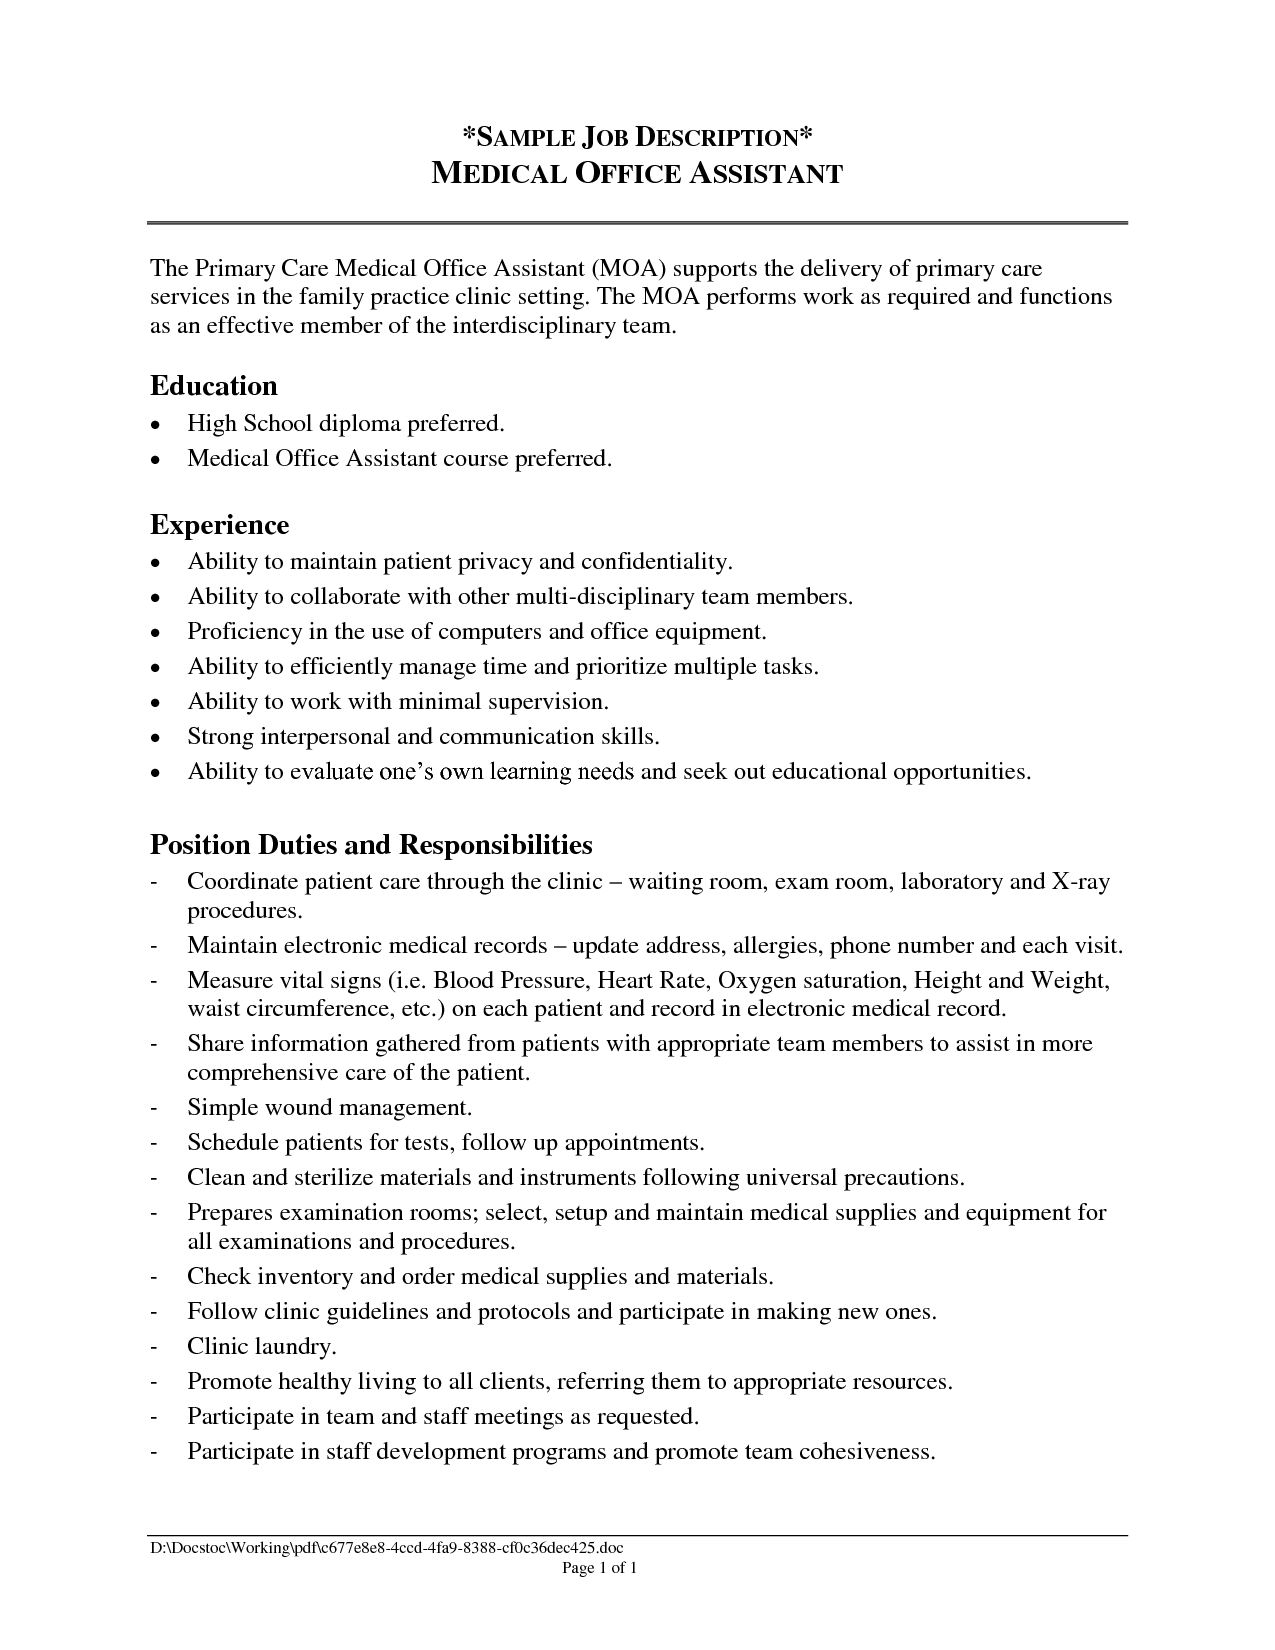 A Resume For A Job How To Write A Resume For A Job Application ...